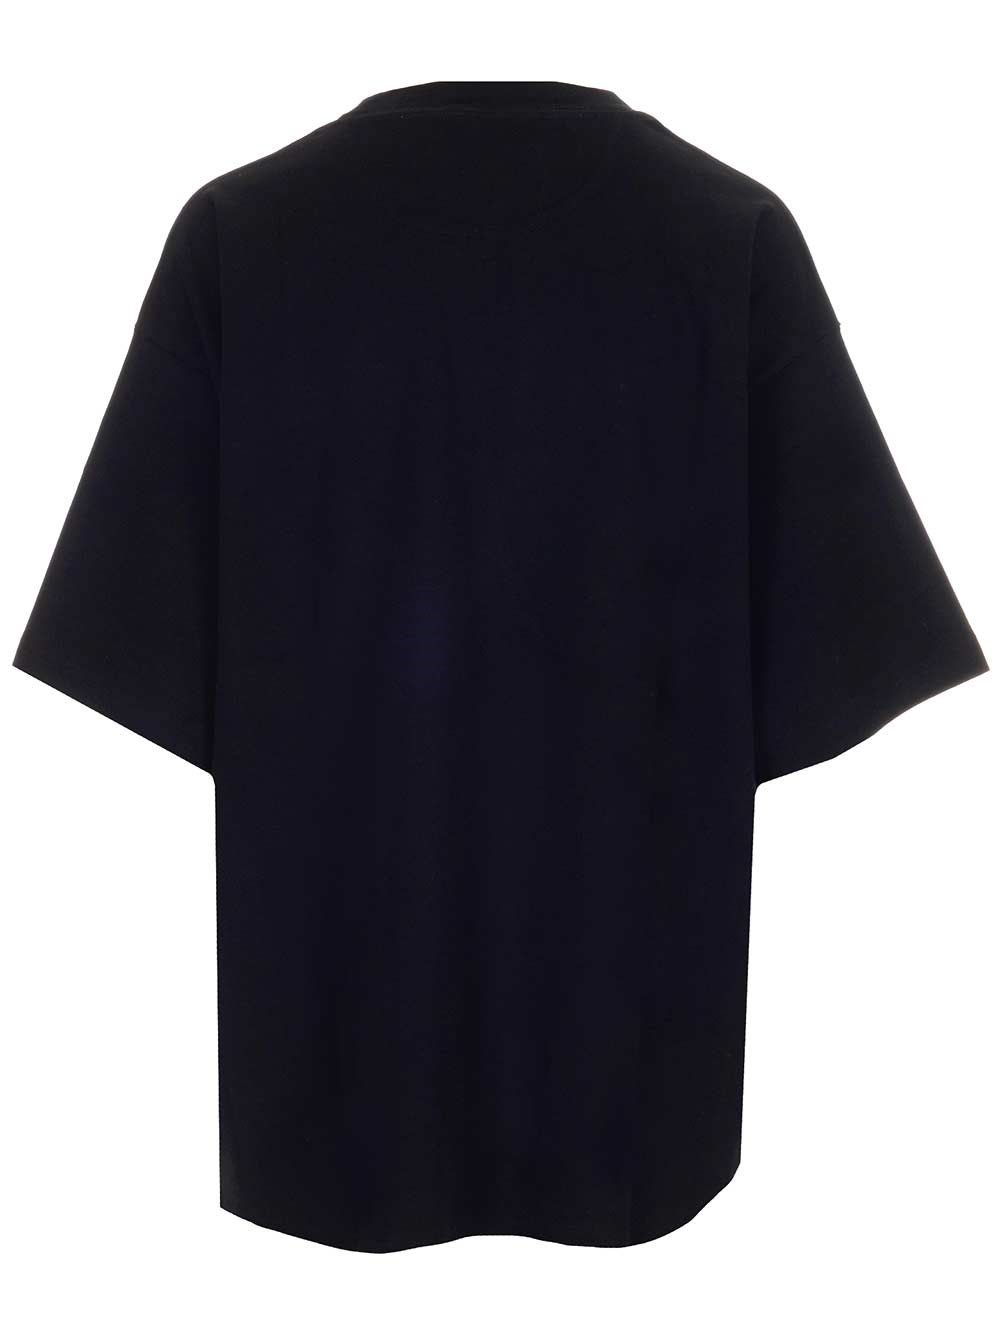 OFF-WHITE Cottons OFF-WHITE WOMEN'S BLACK OTHER MATERIALS T-SHIRT